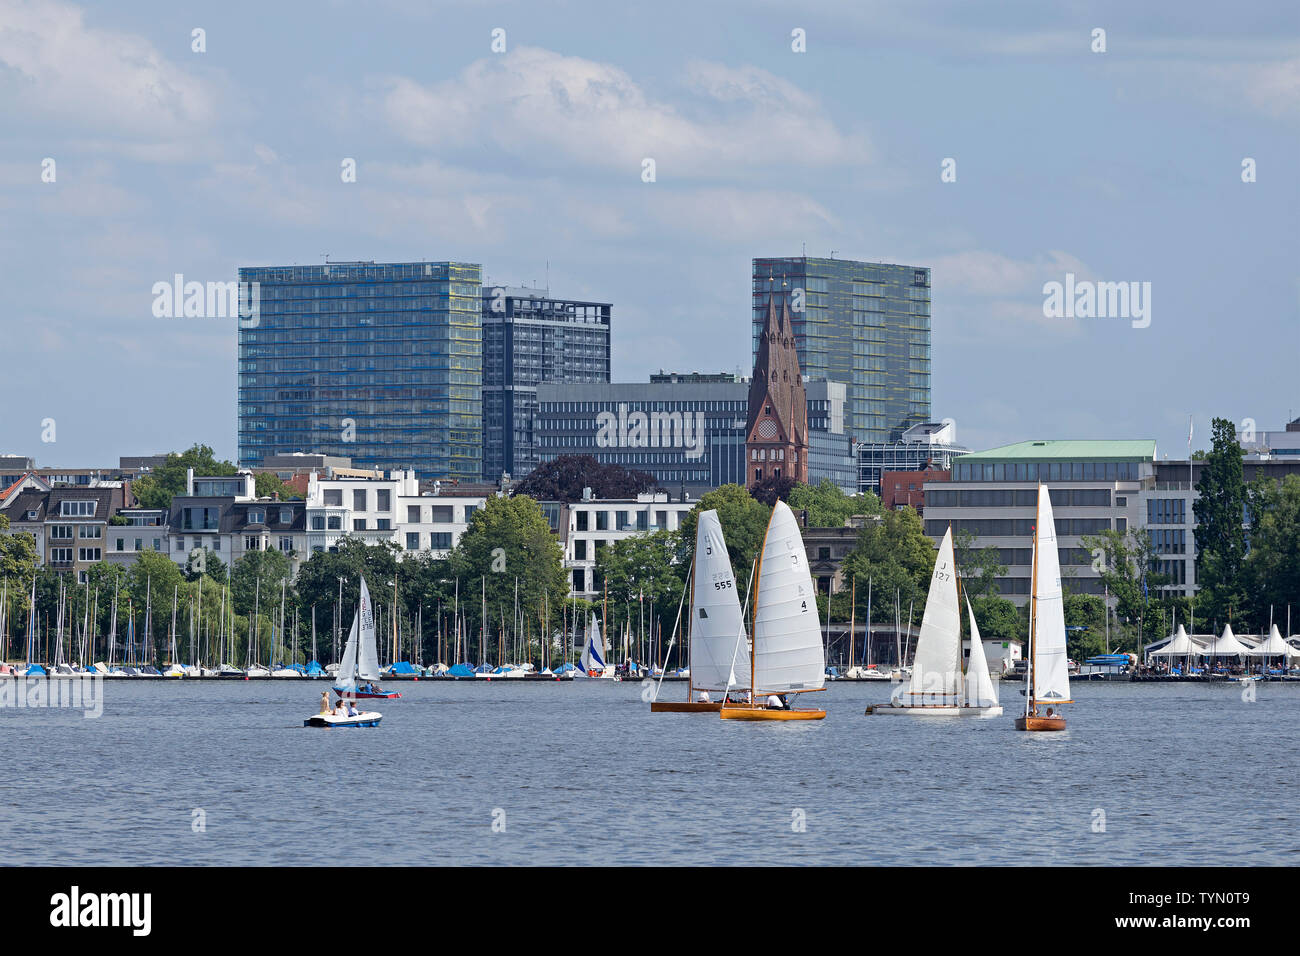 Outer Alster, Hamburg, Germany - Stock Image